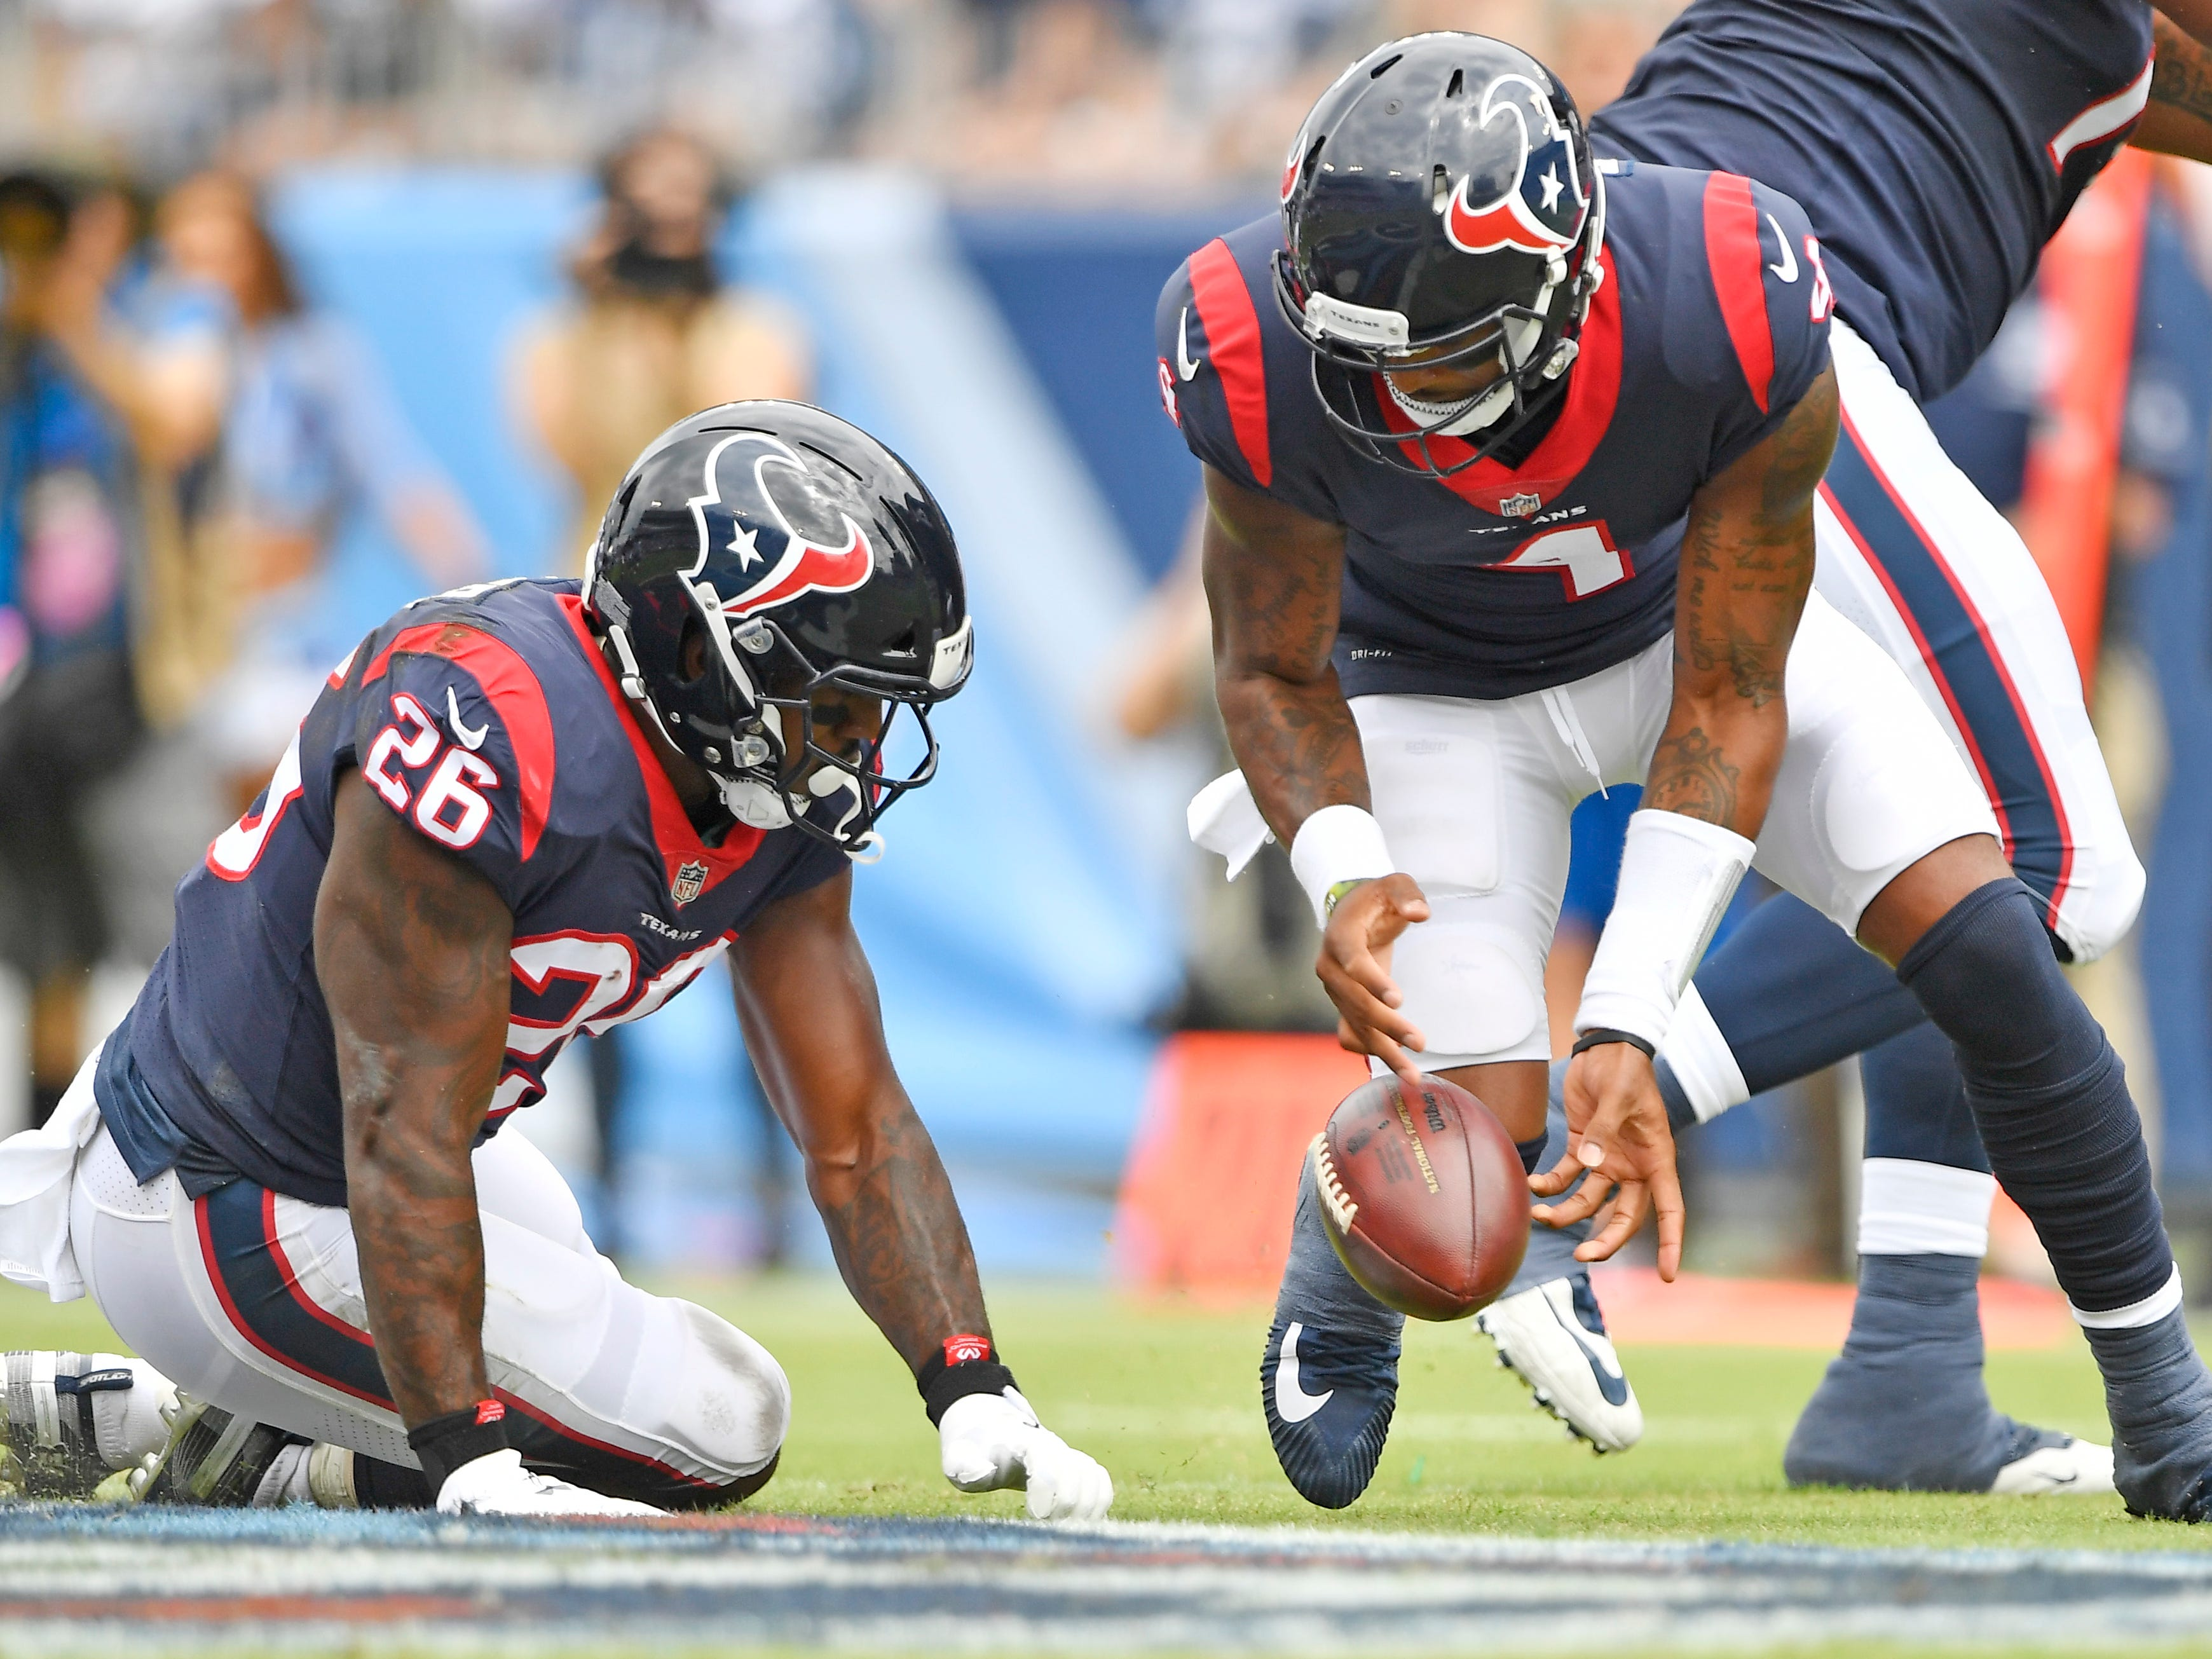 Texans quarterback Deshaun Watson (4) fumbles the snap in the first half at Nissan Stadium Sunday, Sept. 16, 2018, in Nashville, Tenn.